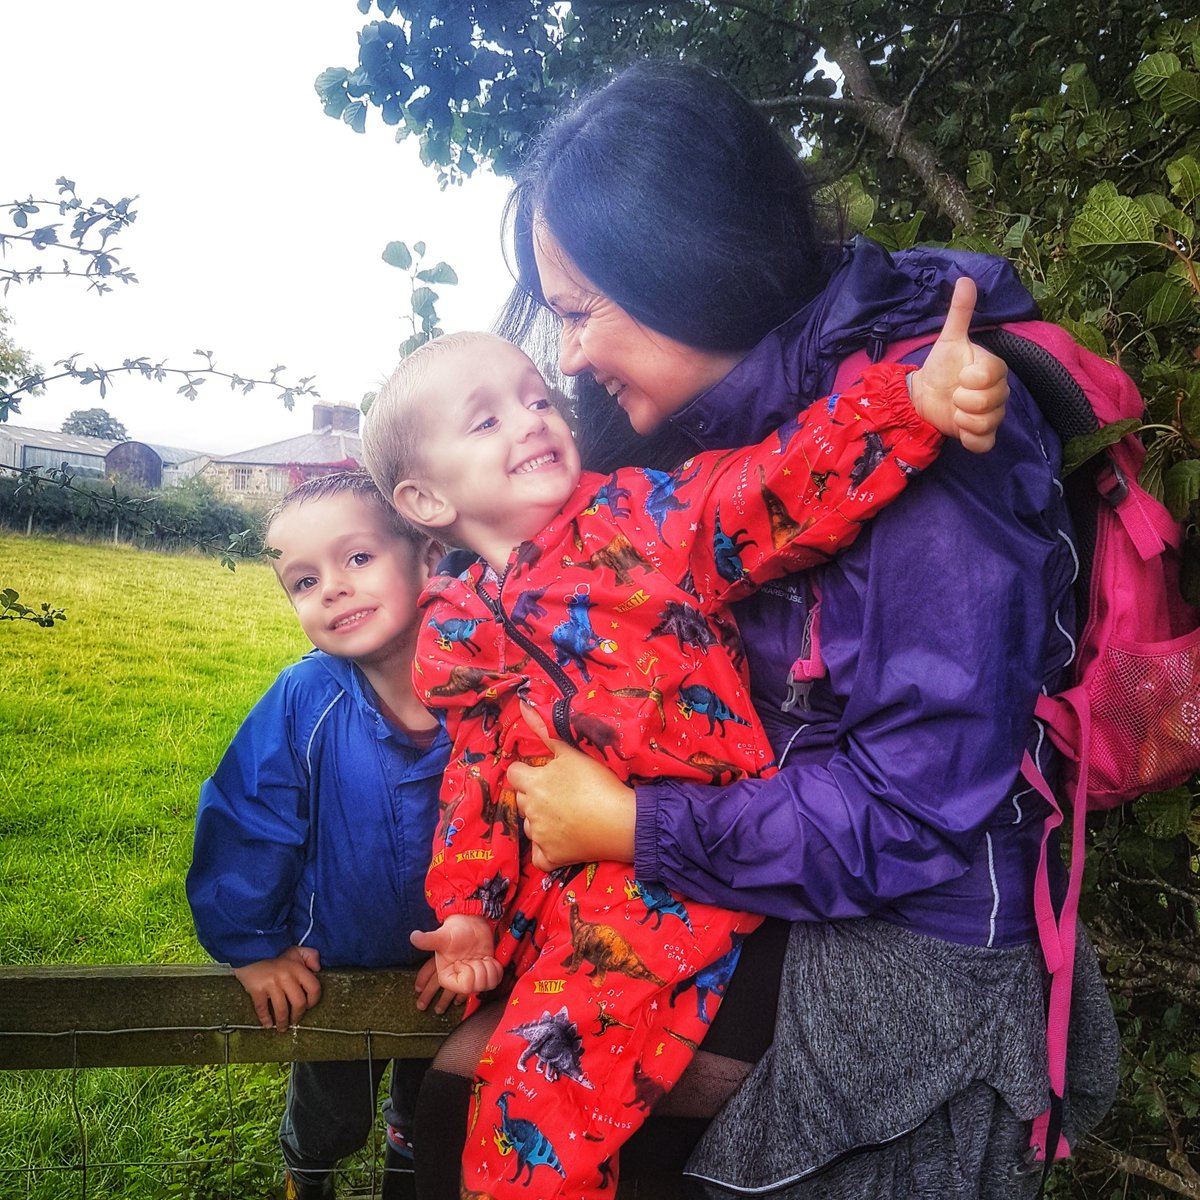 The thoroughly modern mummy: why there is no such thing as work/life balance http://dld.bz/hQ8HM #worklifebalance #worklifeblend #modernmummypic.twitter.com/hY9hUu3cHa